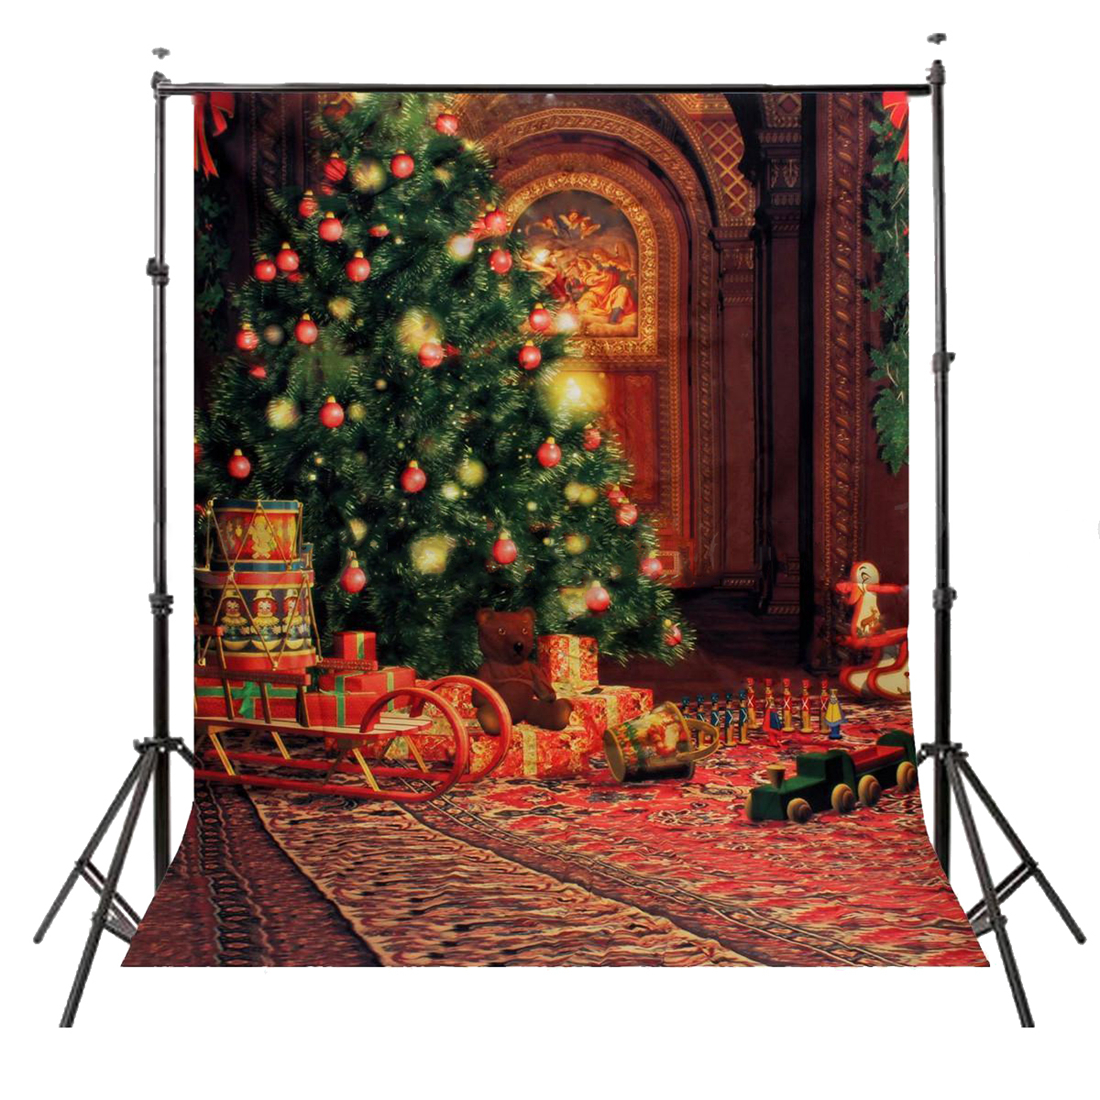 5x7FT Vinyl Photography Backdrop Photo Background, Christmas tree sleigh